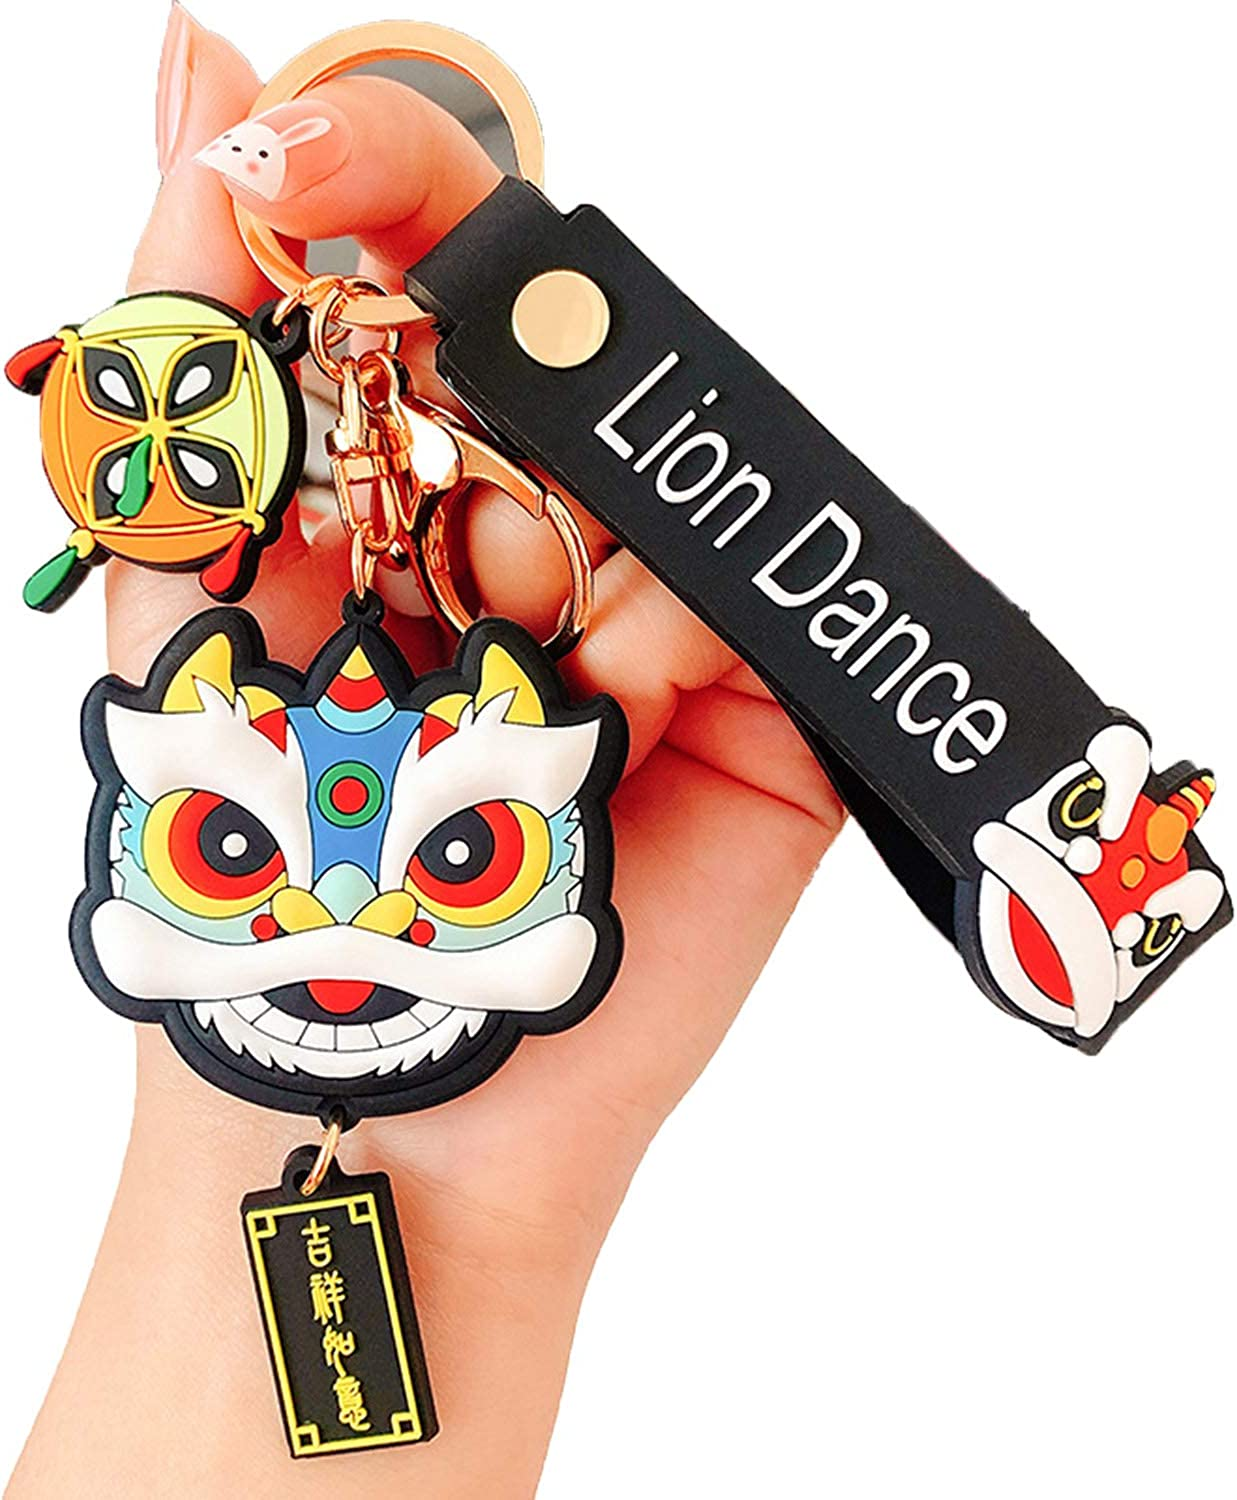 Personality Chinese Style Keychain Chain Trendy Fashion Lion Dance Bag Pendant Couple Accessories Creative Gift New Year Gift